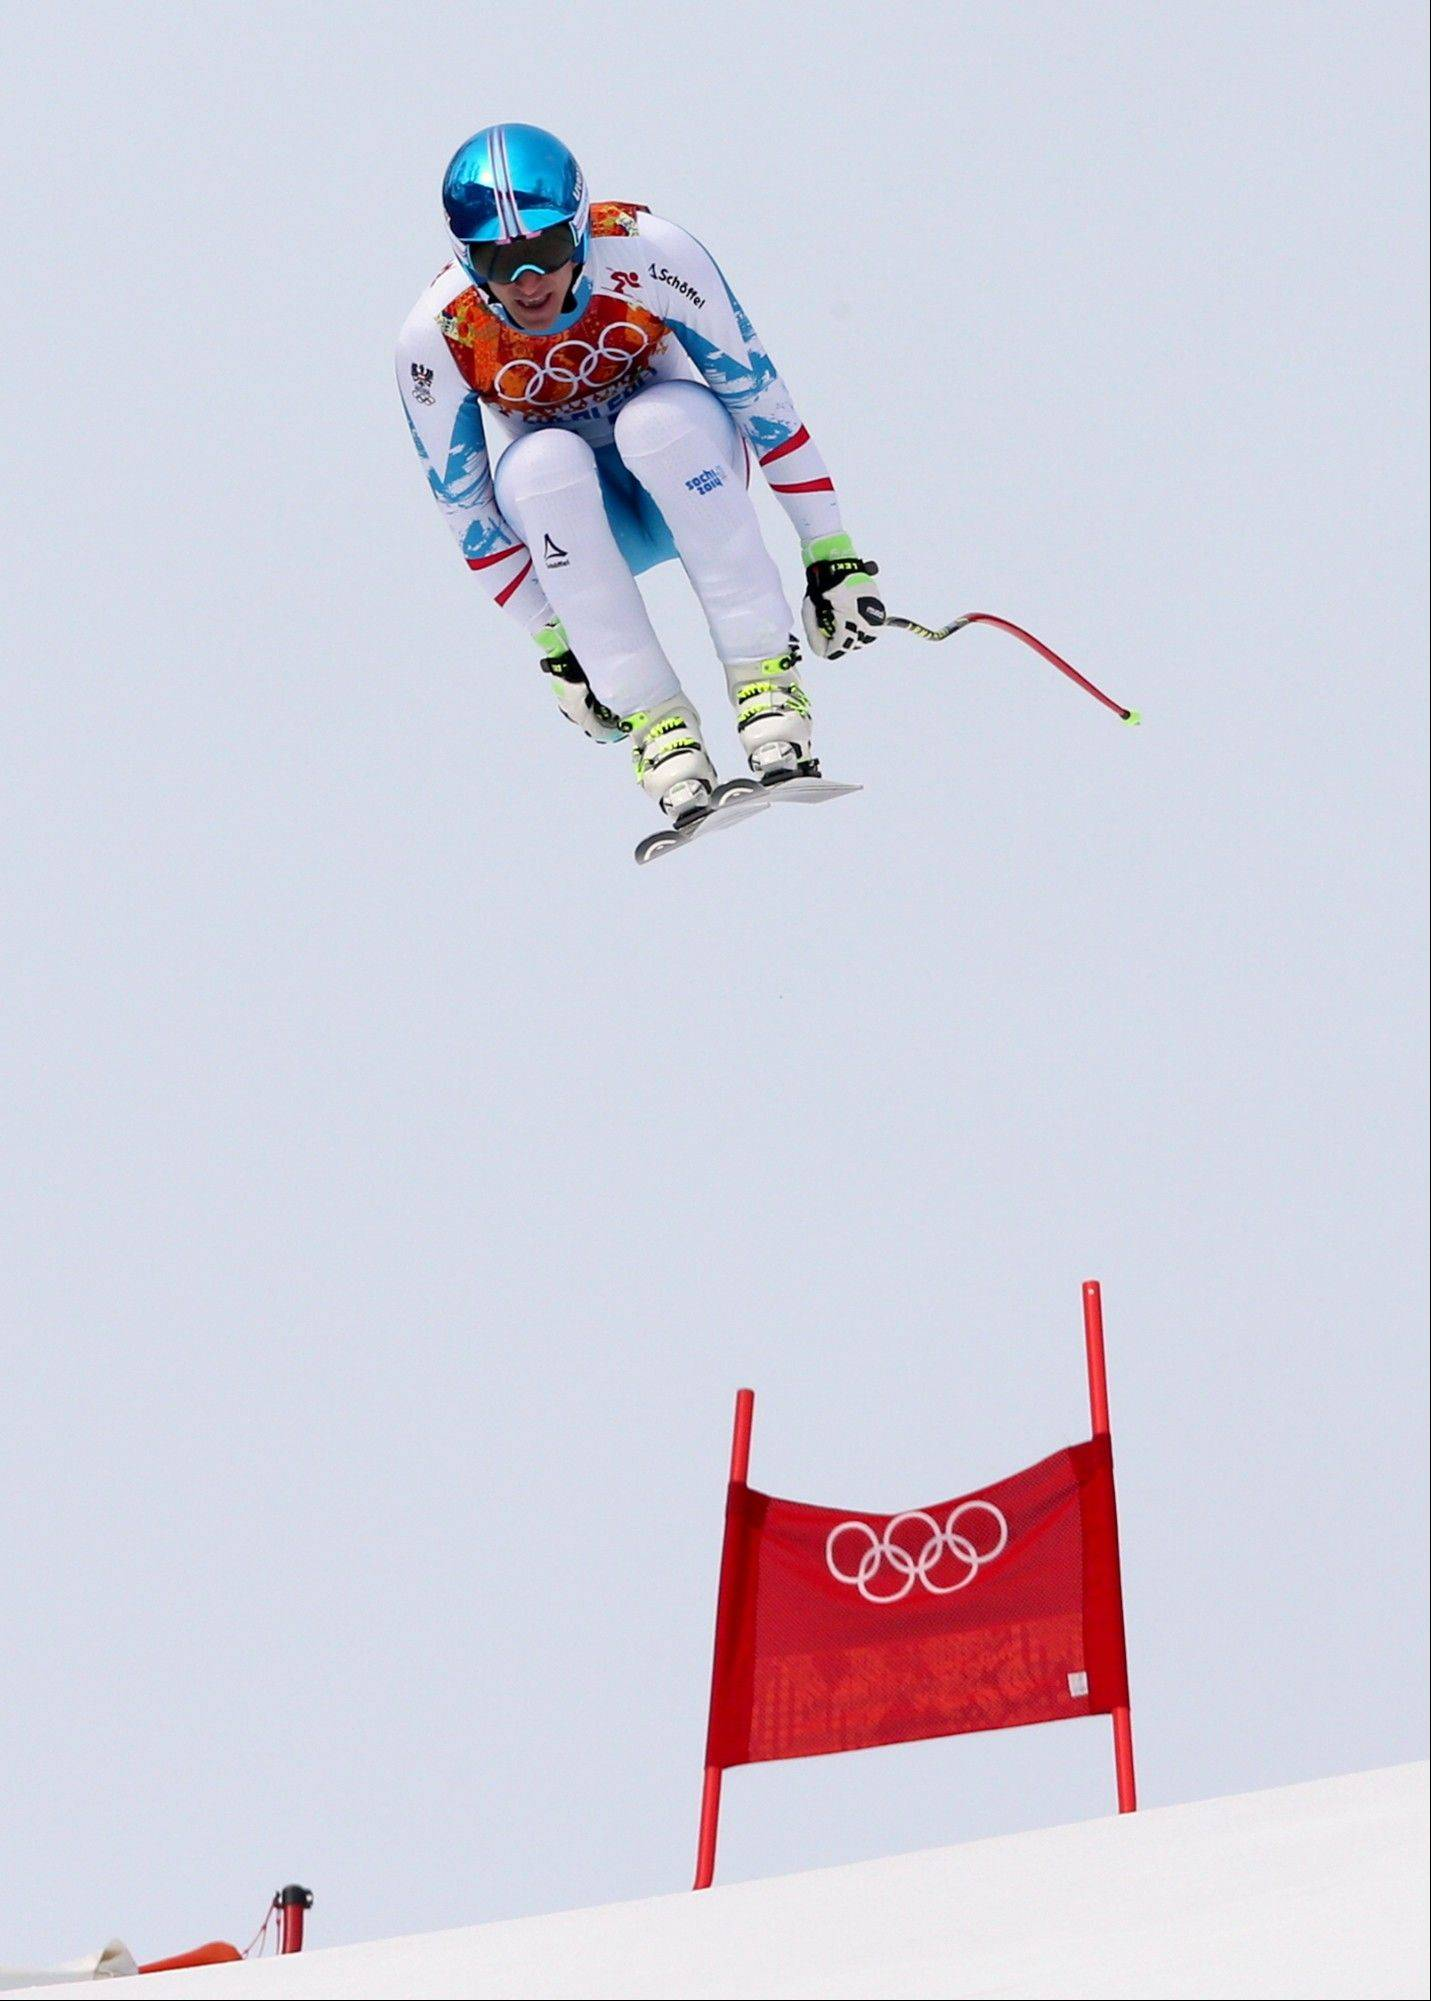 Austria�s gold medalist Matthias Mayer jumps Sunday during the men�s downhill at the Sochi 2014 Winter Olympics in Krasnaya Polyana, Russia.